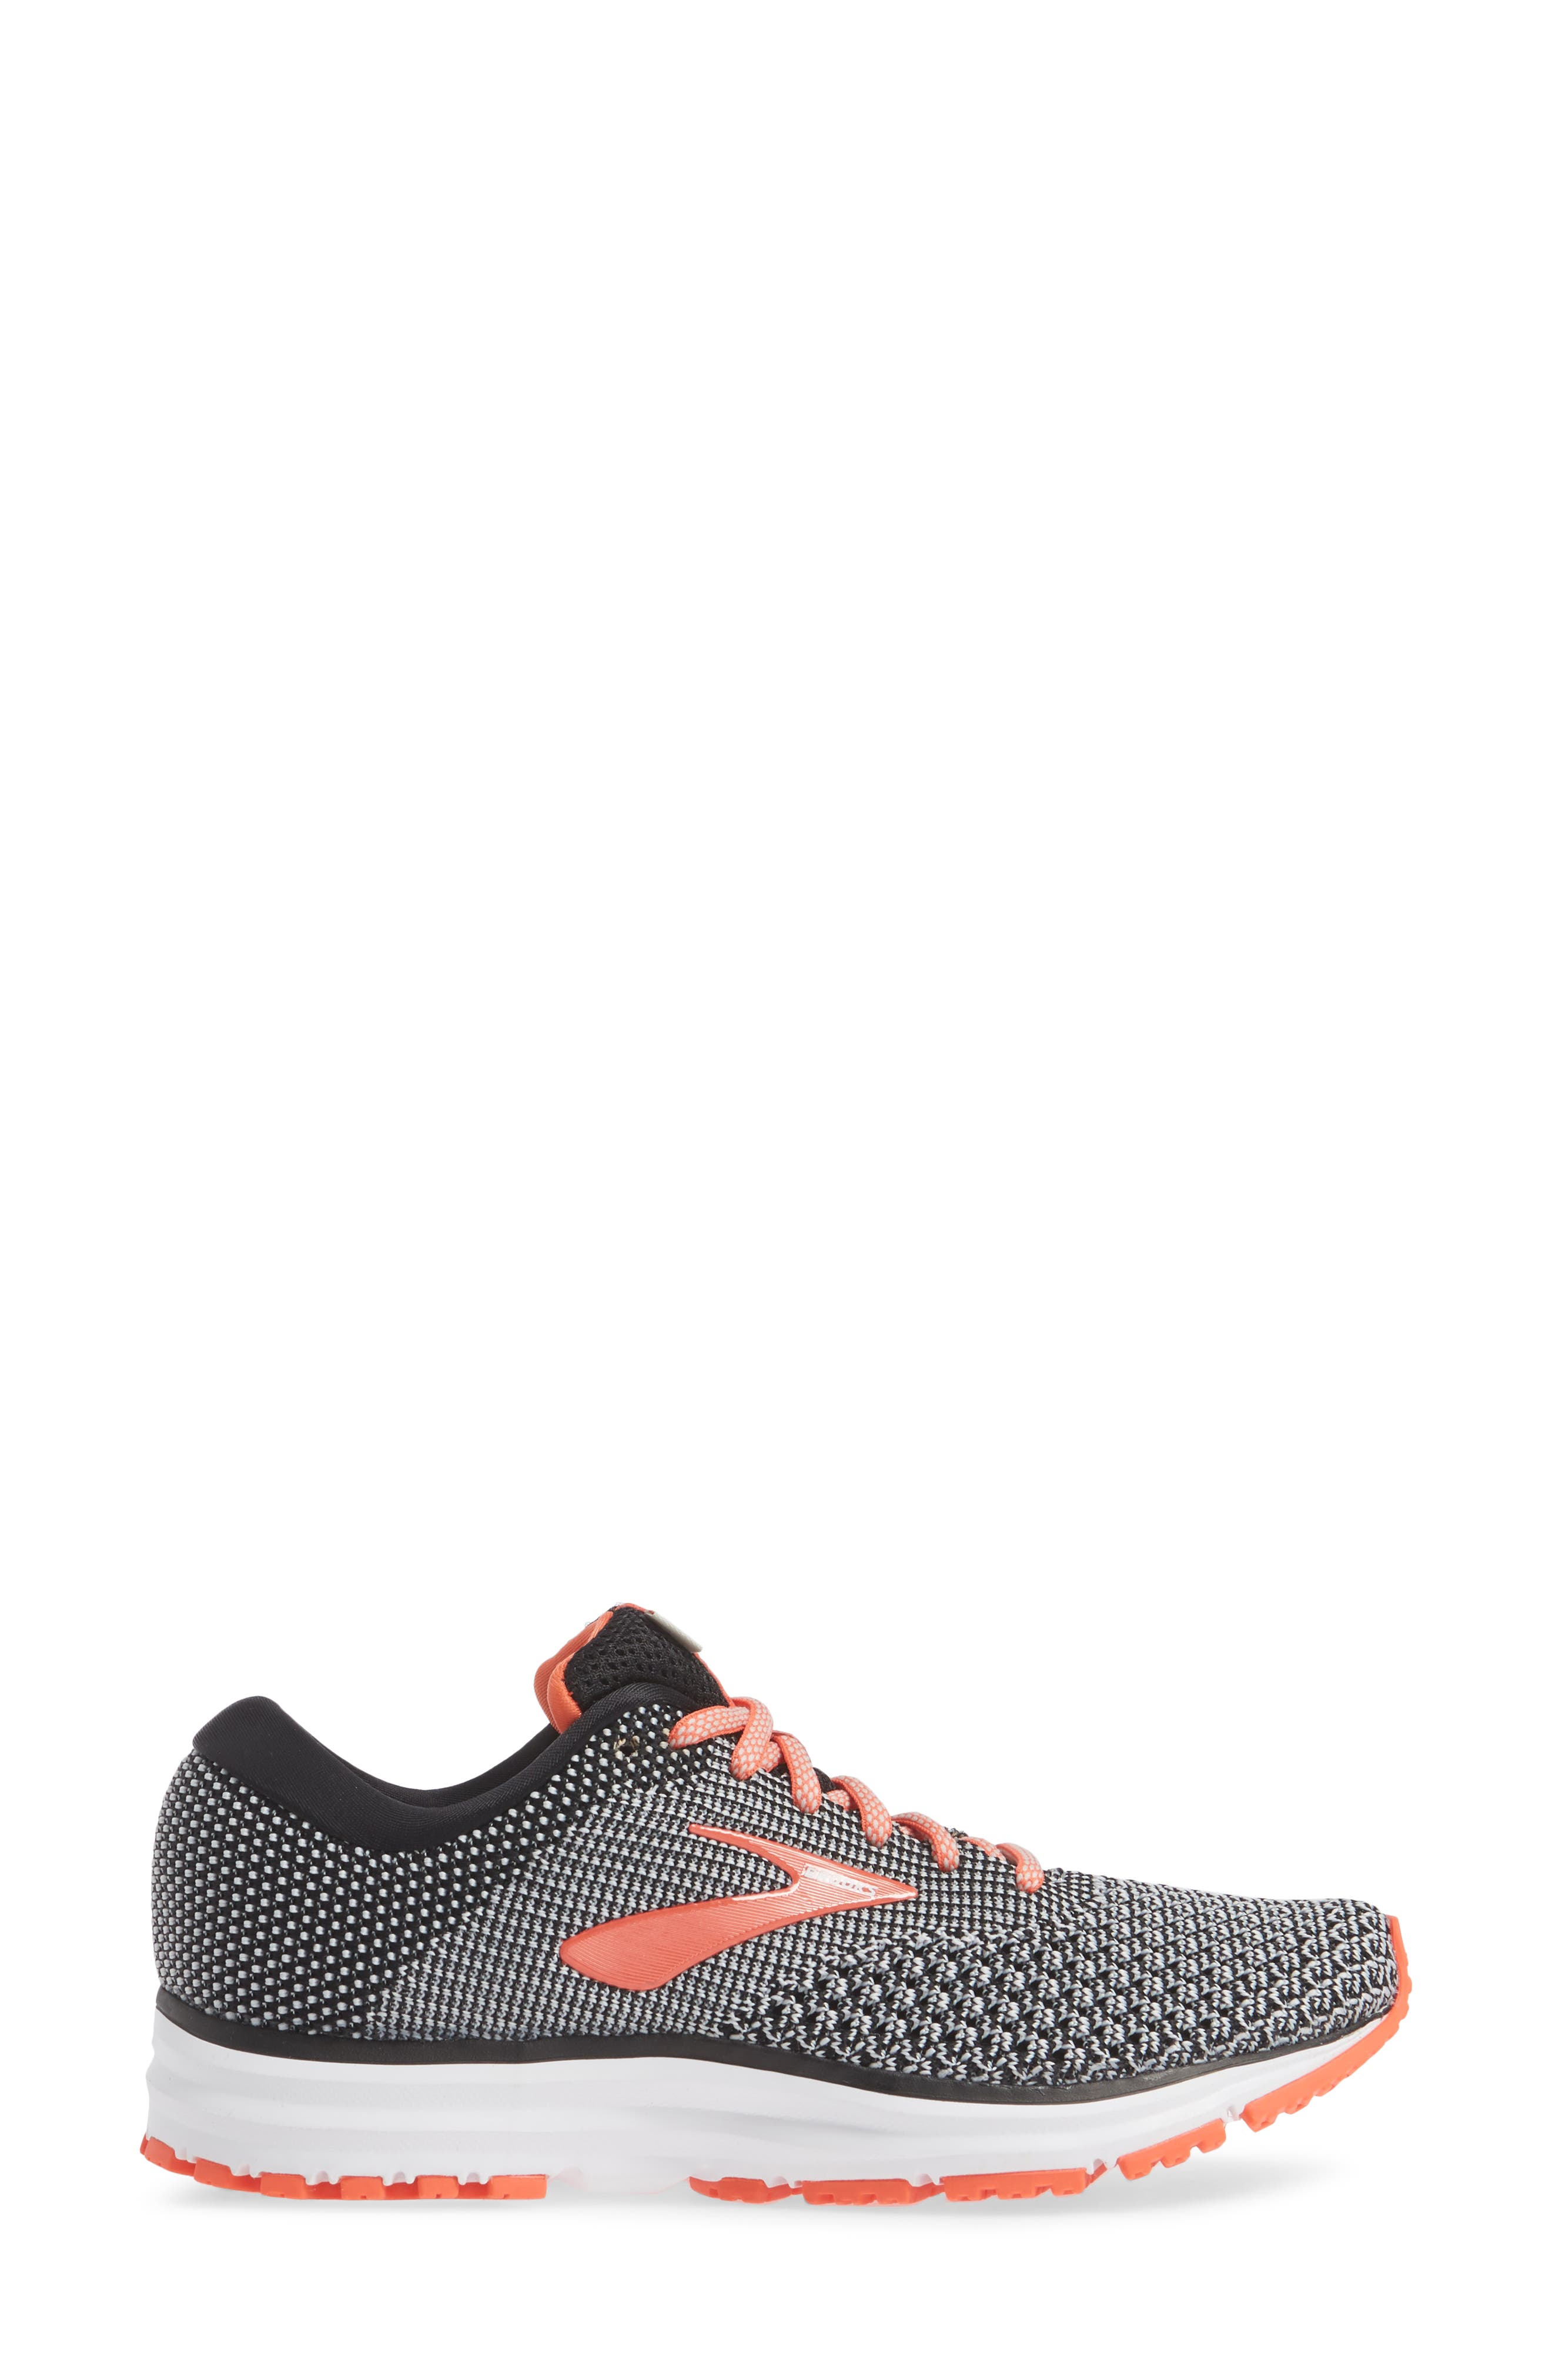 Revel 2 Running Shoe,                             Alternate thumbnail 3, color,                             BLACK/ LIGHT GREY/ CORAL